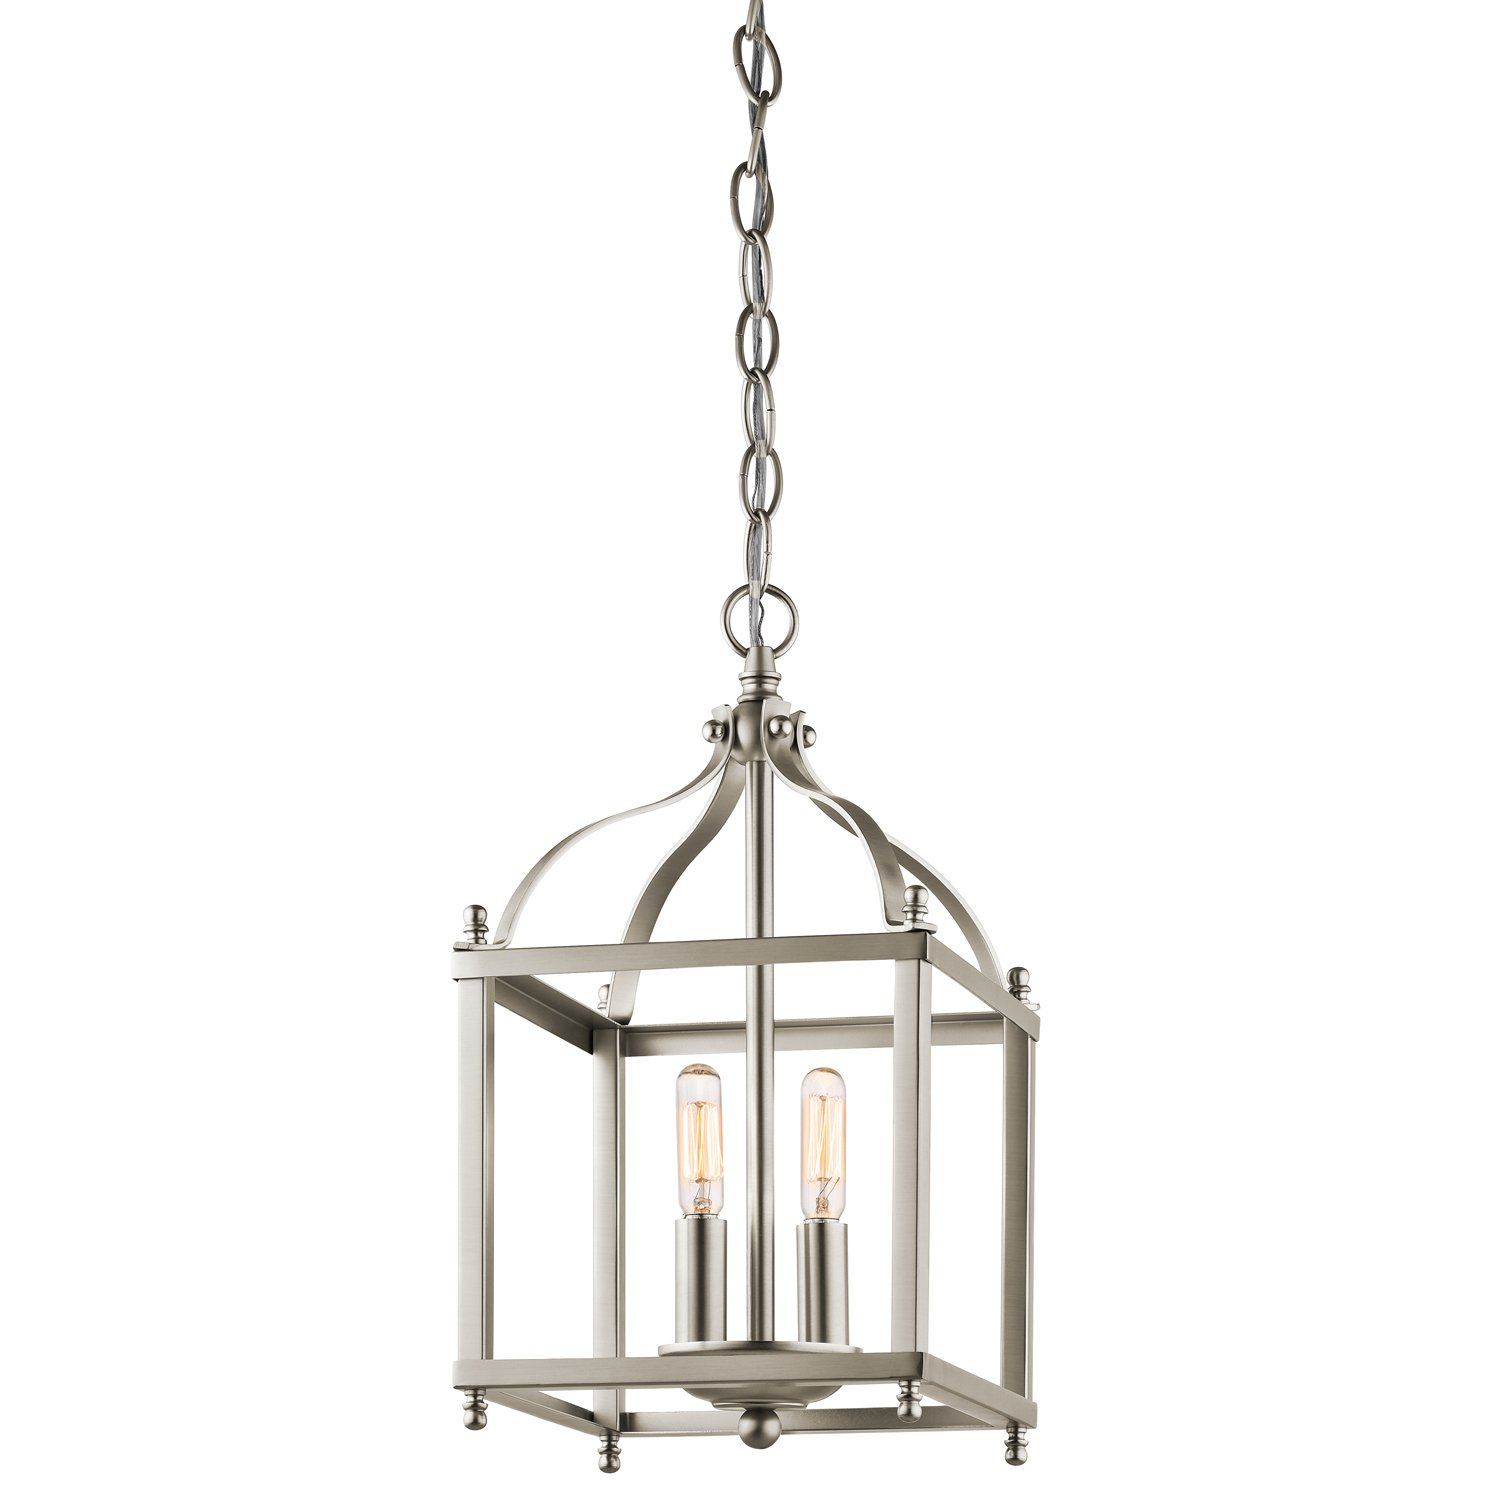 Kichler 42565ni larkin 2 light foyer pendant in brushed nickel kichler 42565ni larkin 2 light foyer pendant in brushed nickel ceiling pendant fixtures amazon arubaitofo Gallery